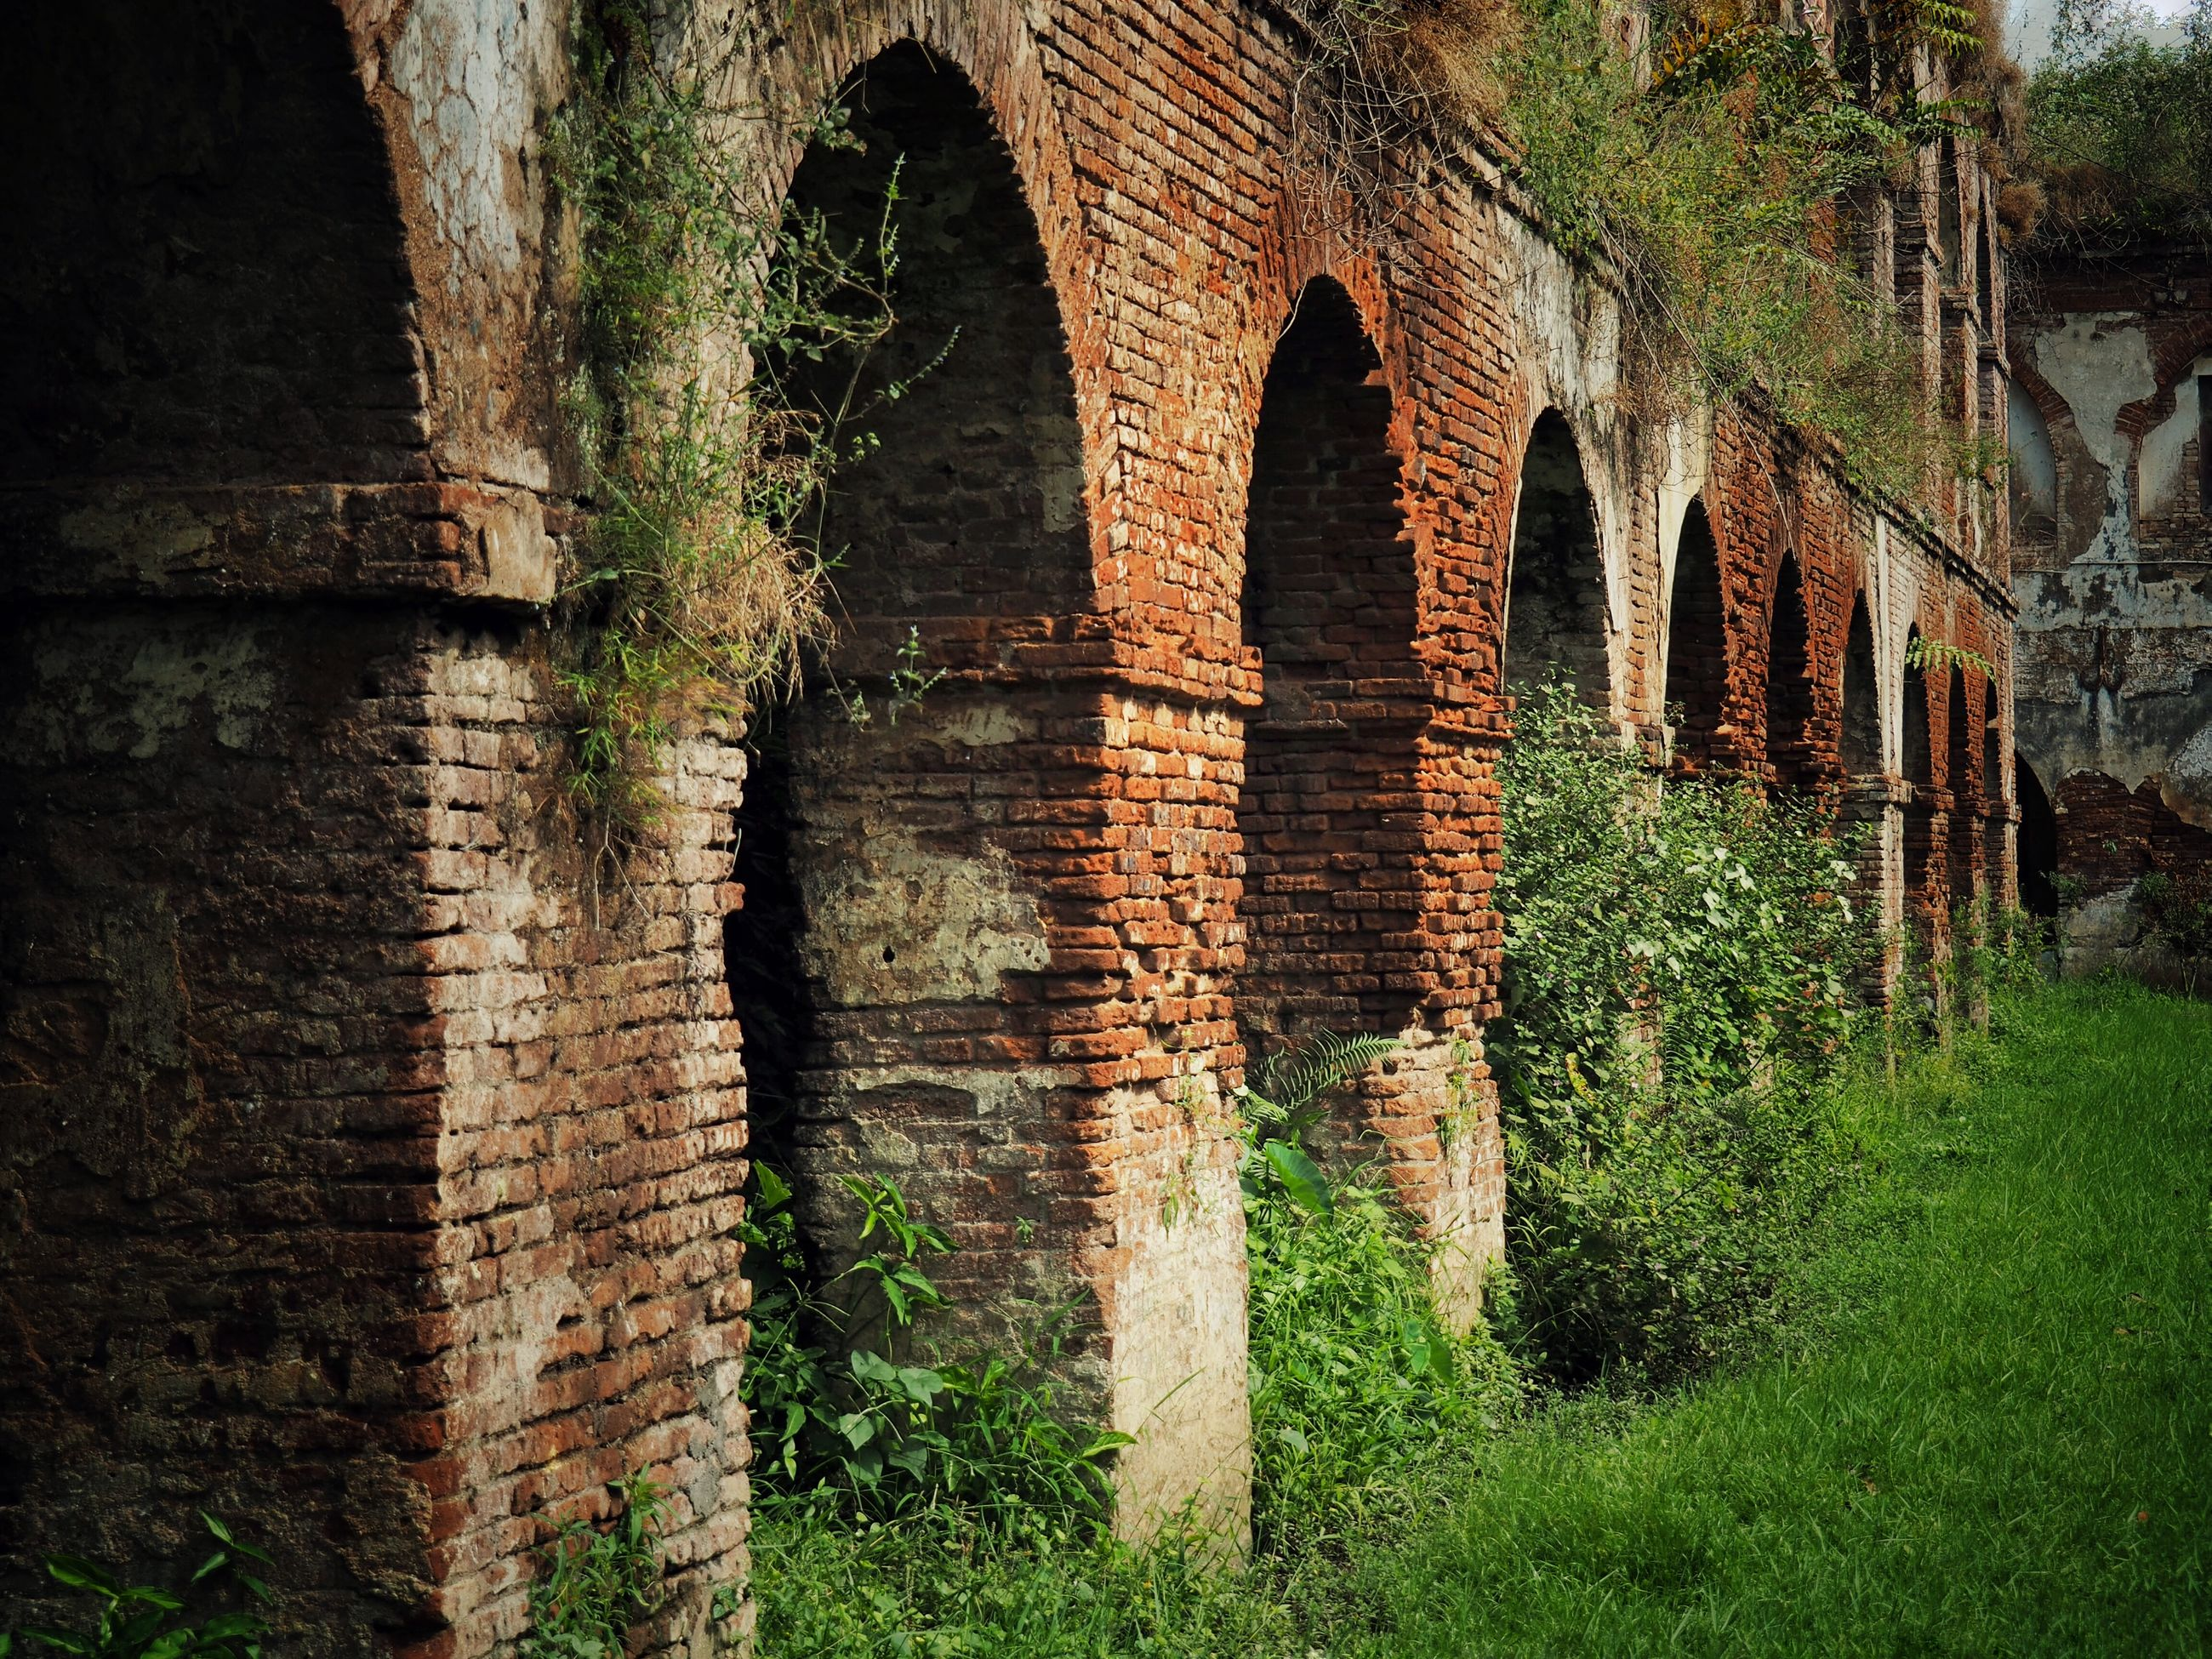 architecture, built structure, grass, old, history, arch, the past, plant, green color, growth, brick wall, day, outdoors, no people, nature, ancient, deterioration, run-down, grassy, tranquility, historic, exterior